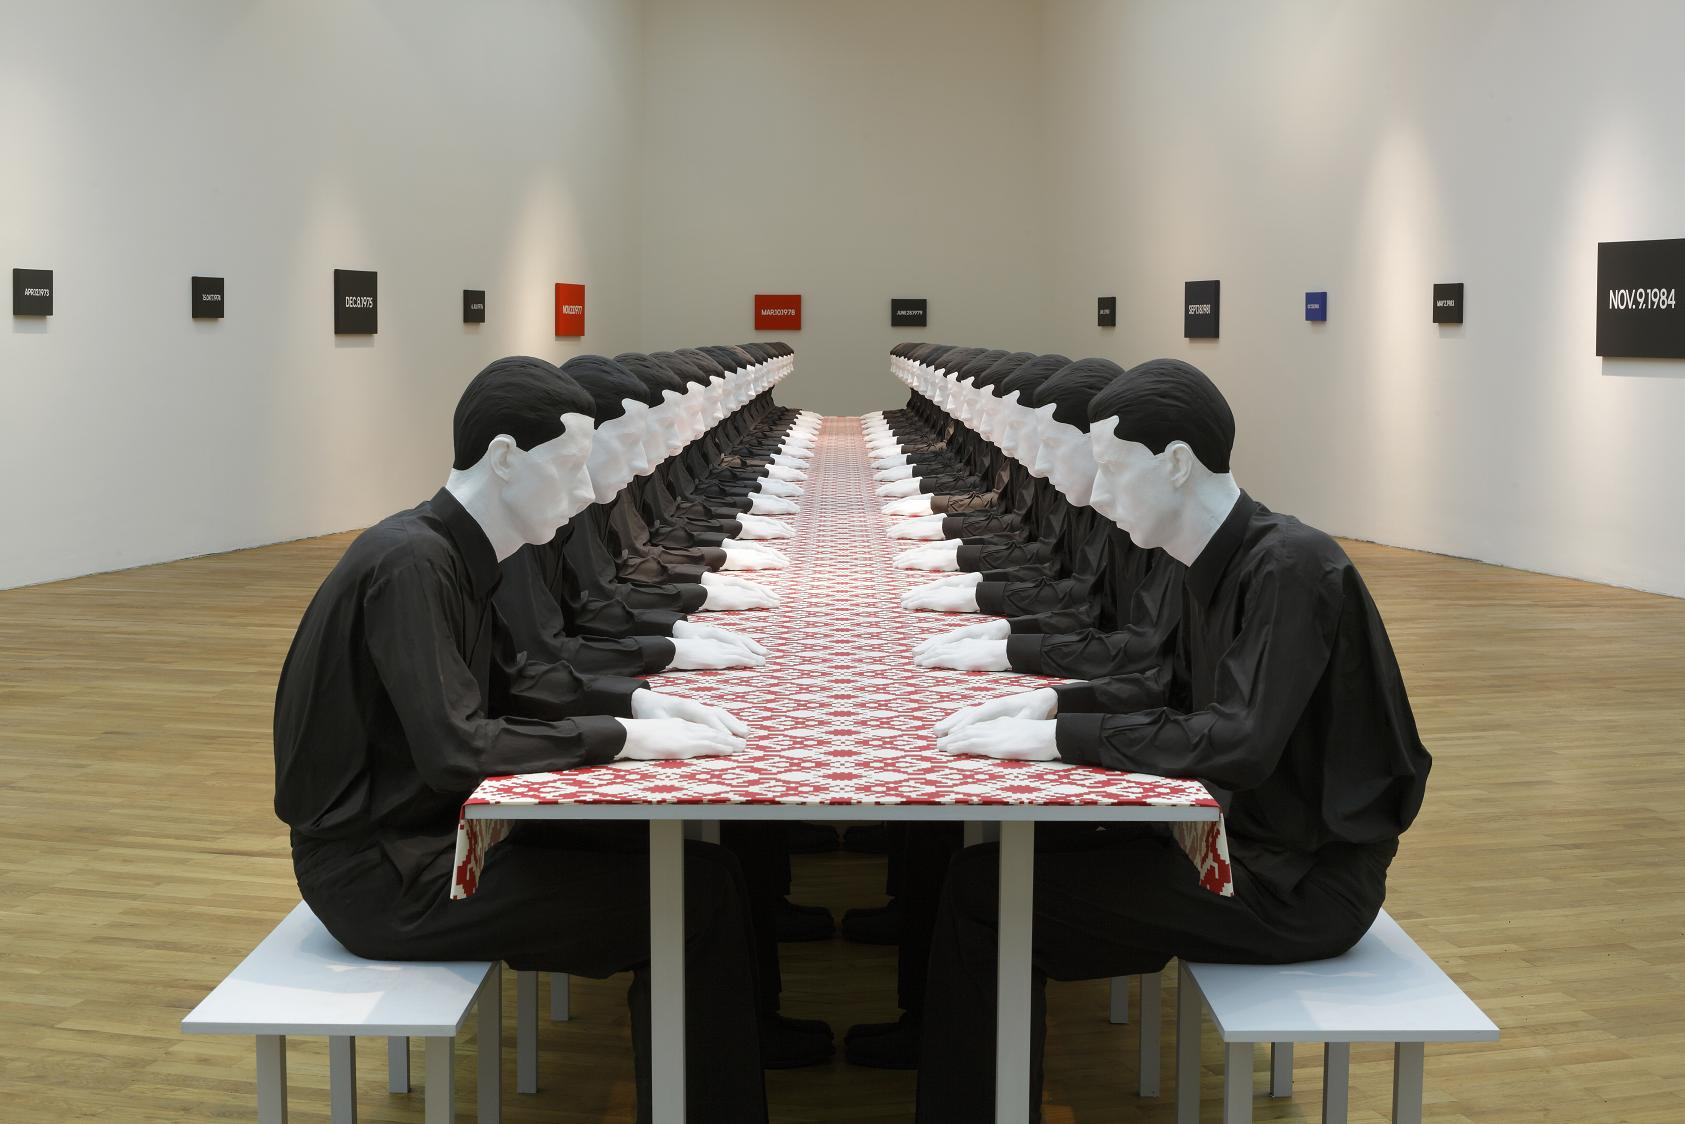 Katharina Fritsch, Tischgesellschaft (Company at the Table), 1998, polyester, wood, cotton and paint, 140 x 1600 x 175 cm